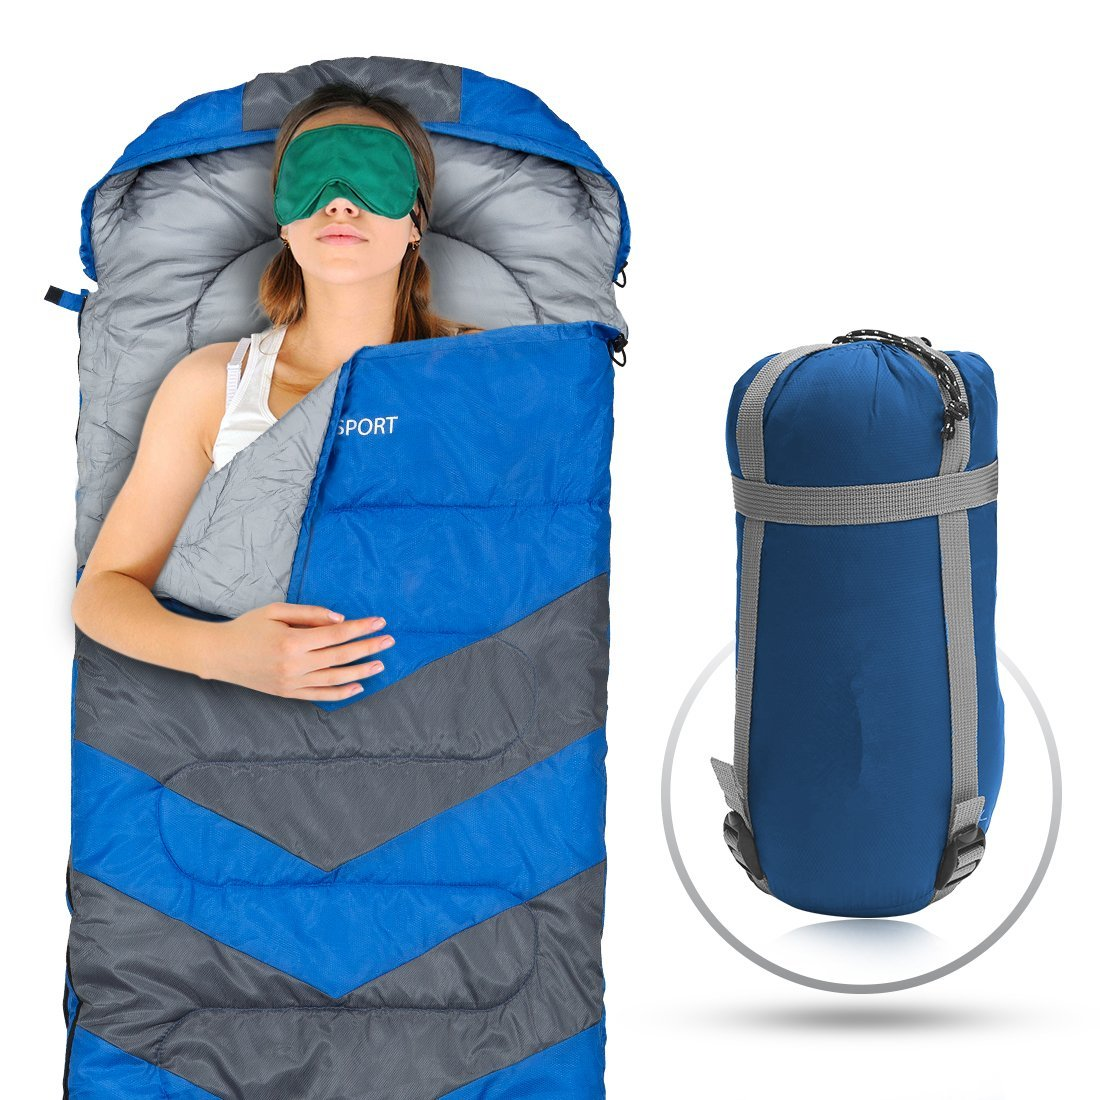 Sleeping Bag Envelope Lightweight Portable, Waterproof, Comfort With Compression Sack Great For 4 Season Traveling,... by